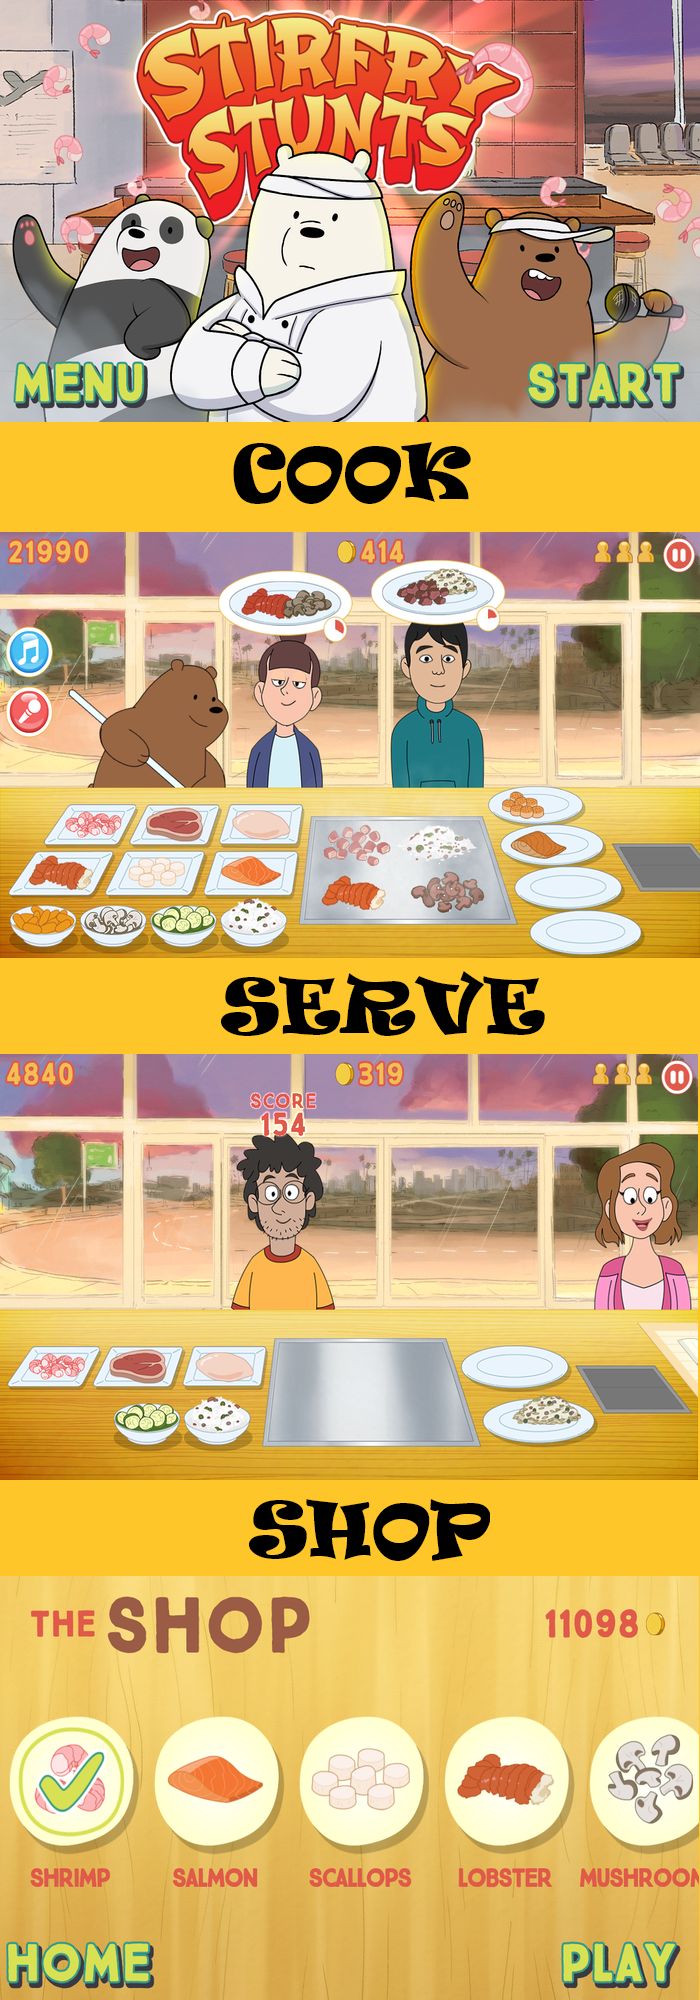 Game Review: StirFry Stunts